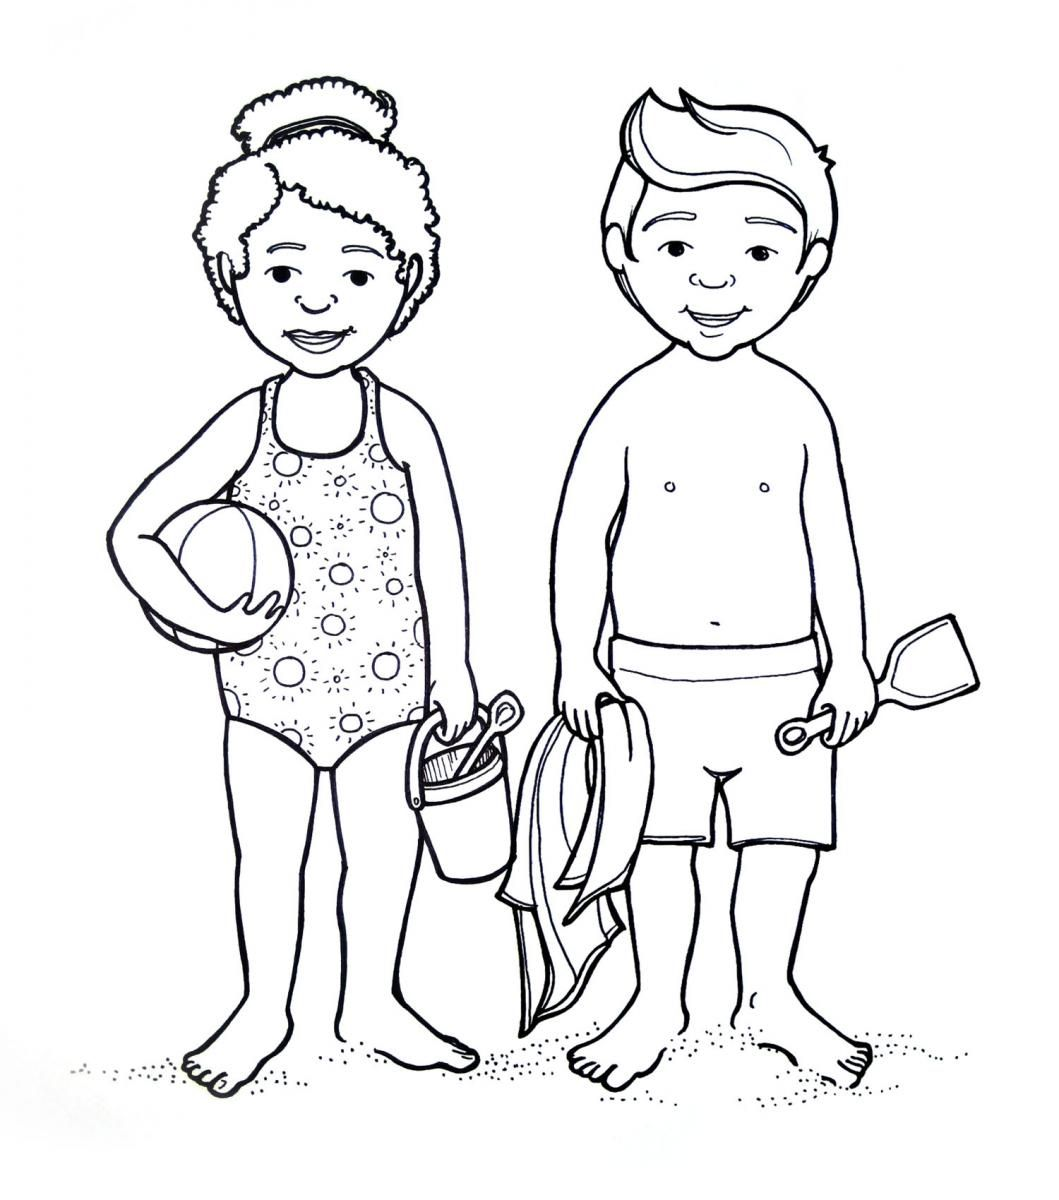 Preschoolers Coloring Pages Of The Human Body